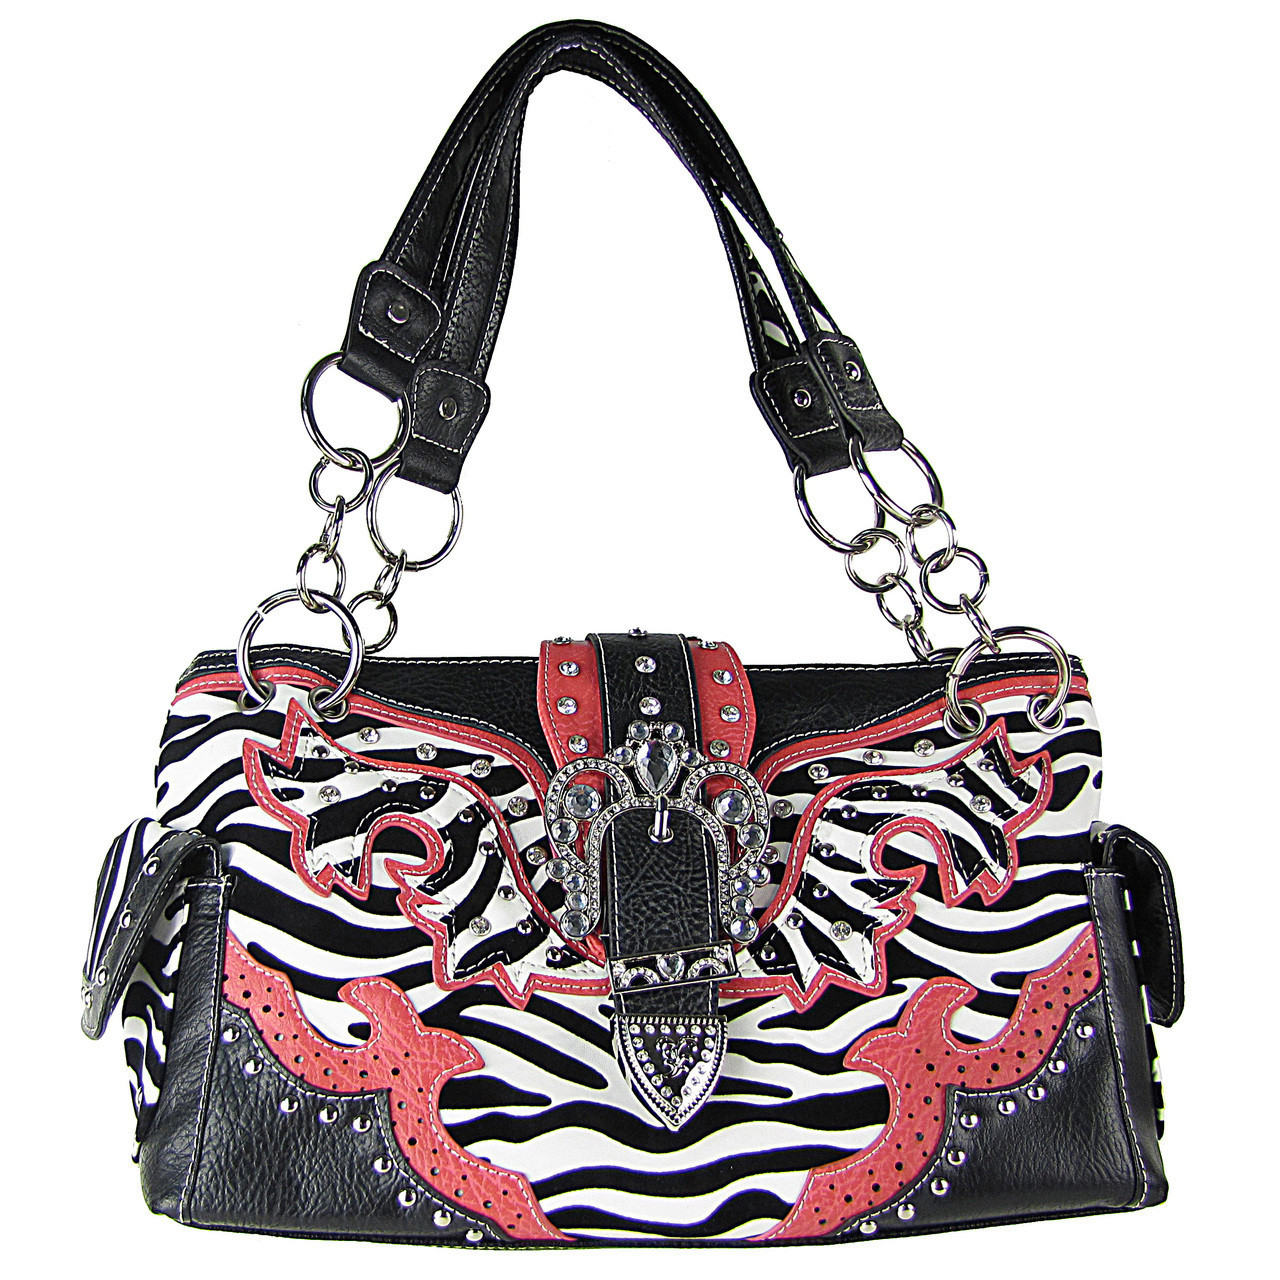 HOT PINK ZEBRA STUDDED BUCKLE RHINESTONE LOOK SHOULDER HANDBAG HB1-W37FZHPK